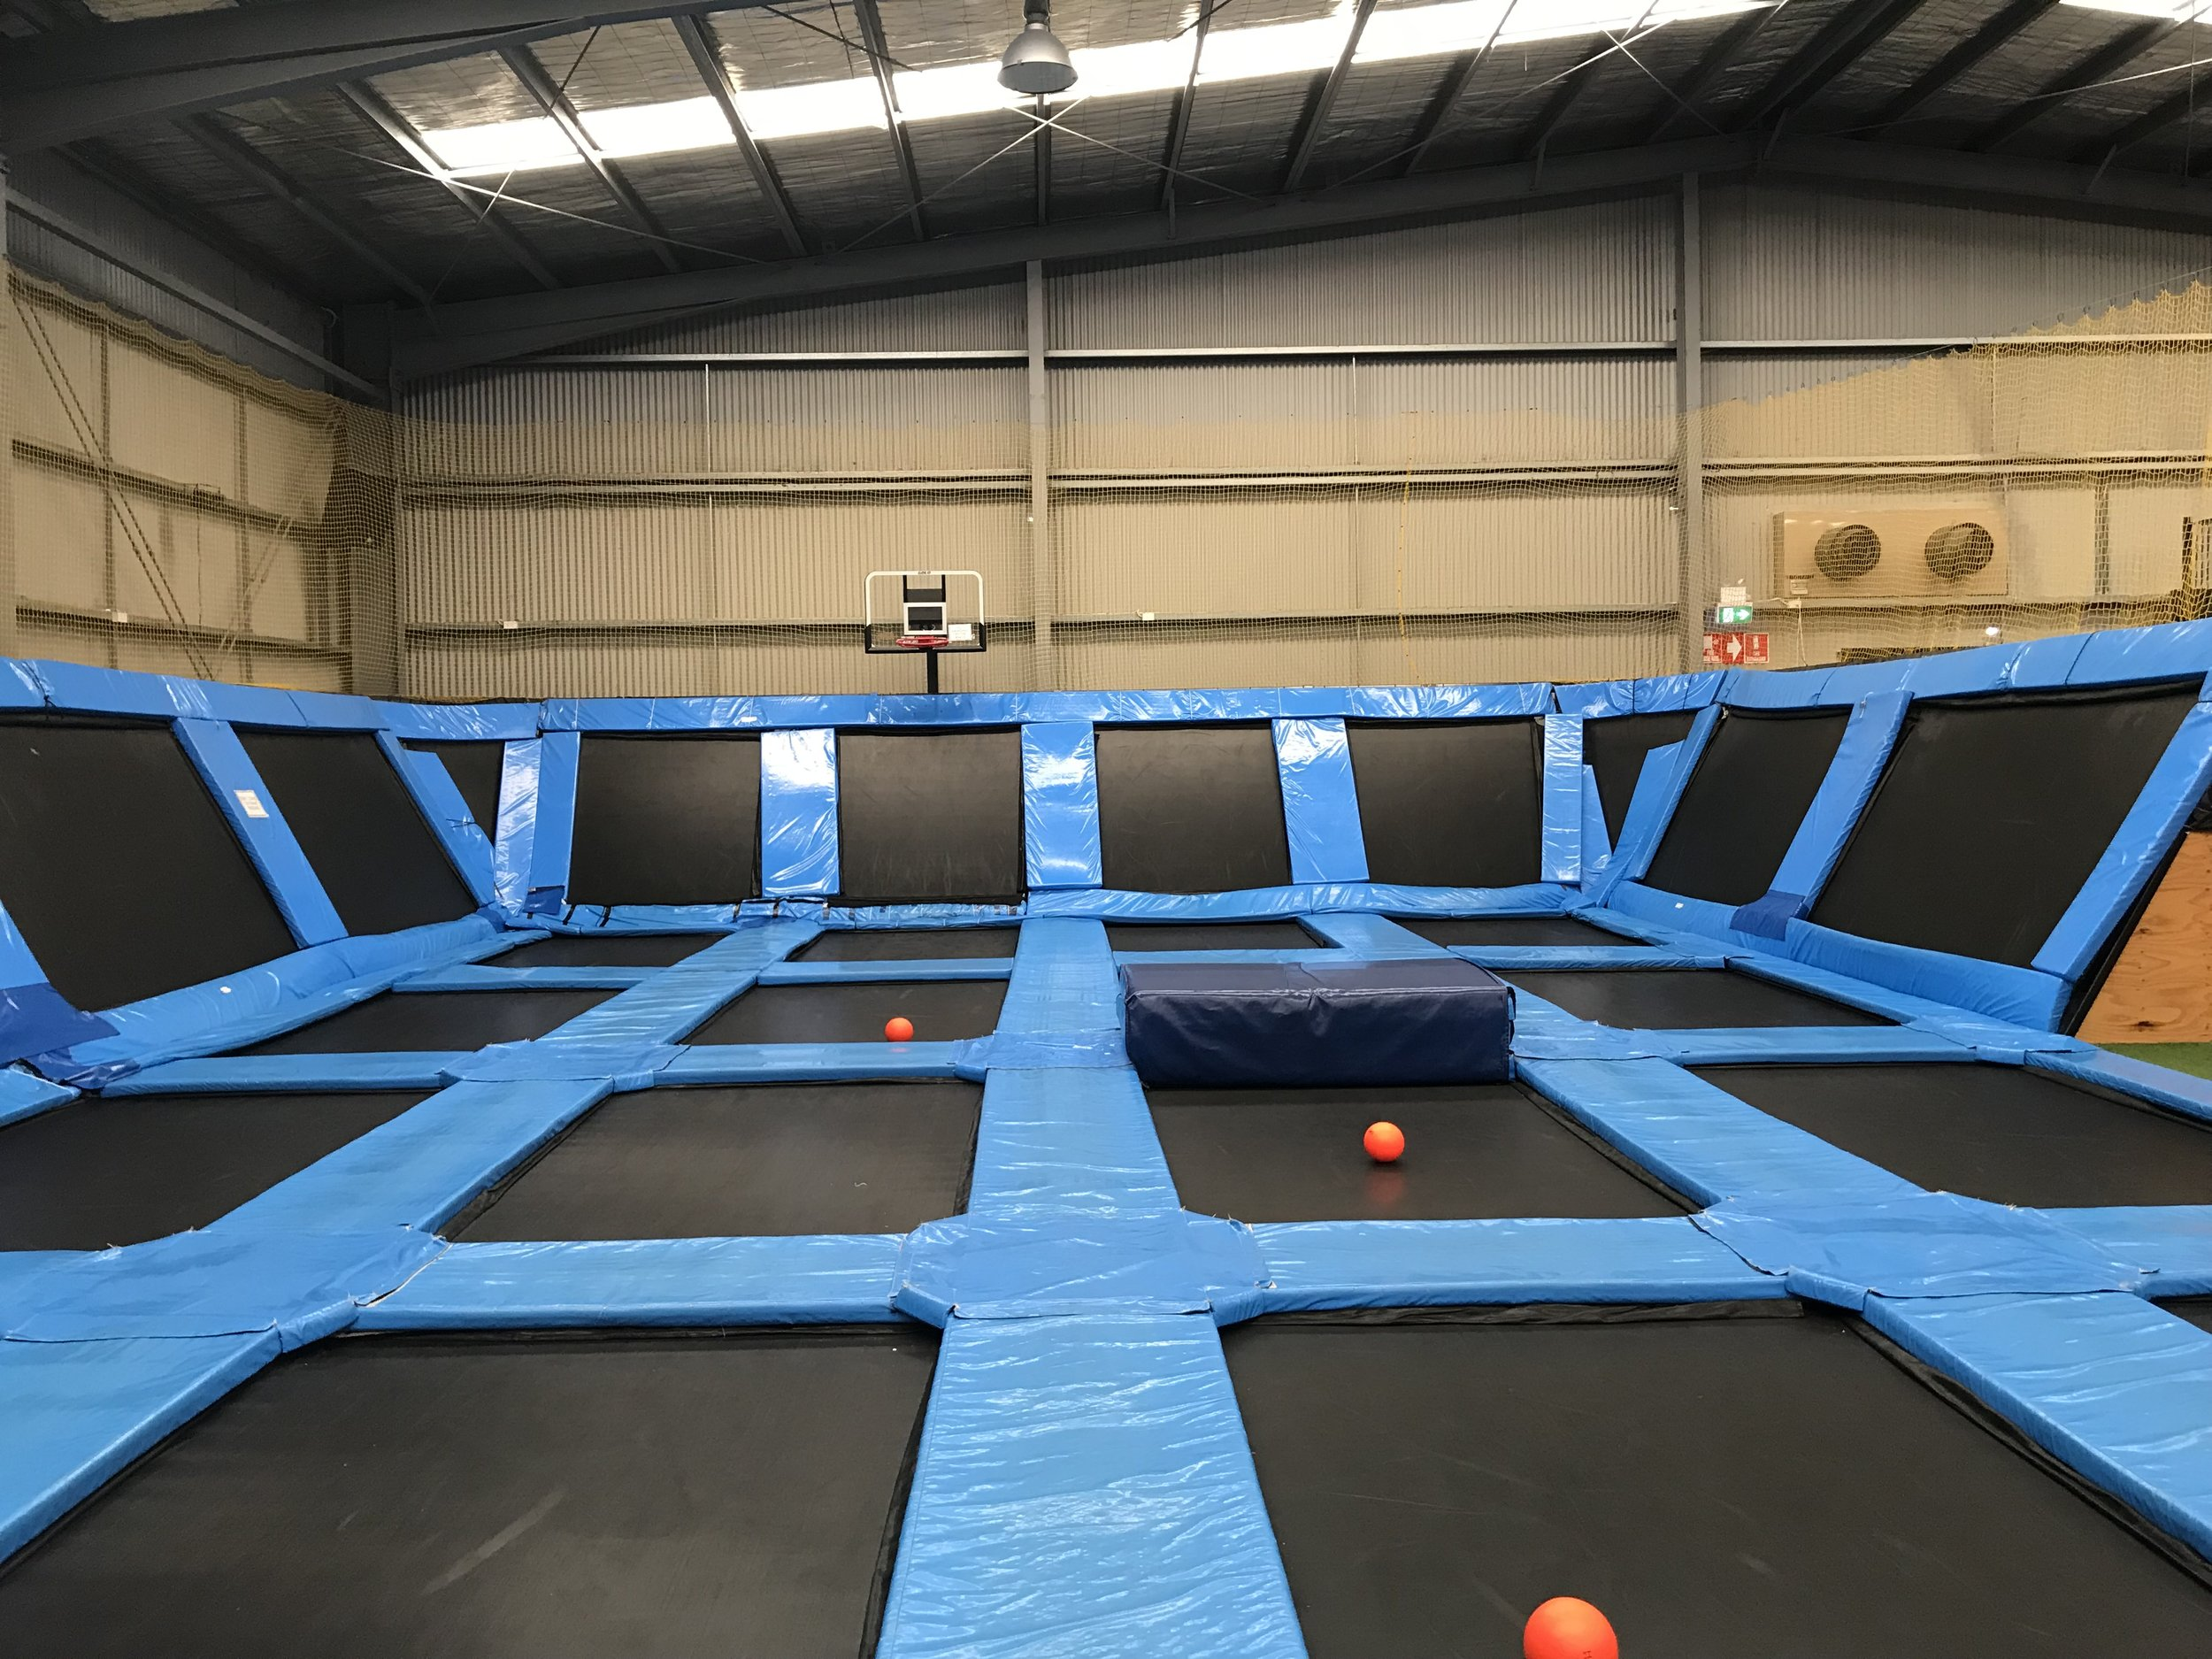 Free JumpDodge BallBasketball - The free jump area is our network of interconnected floor and wall trampolines. Bounce off the walls and shoot some hoops all while you get a great workout!